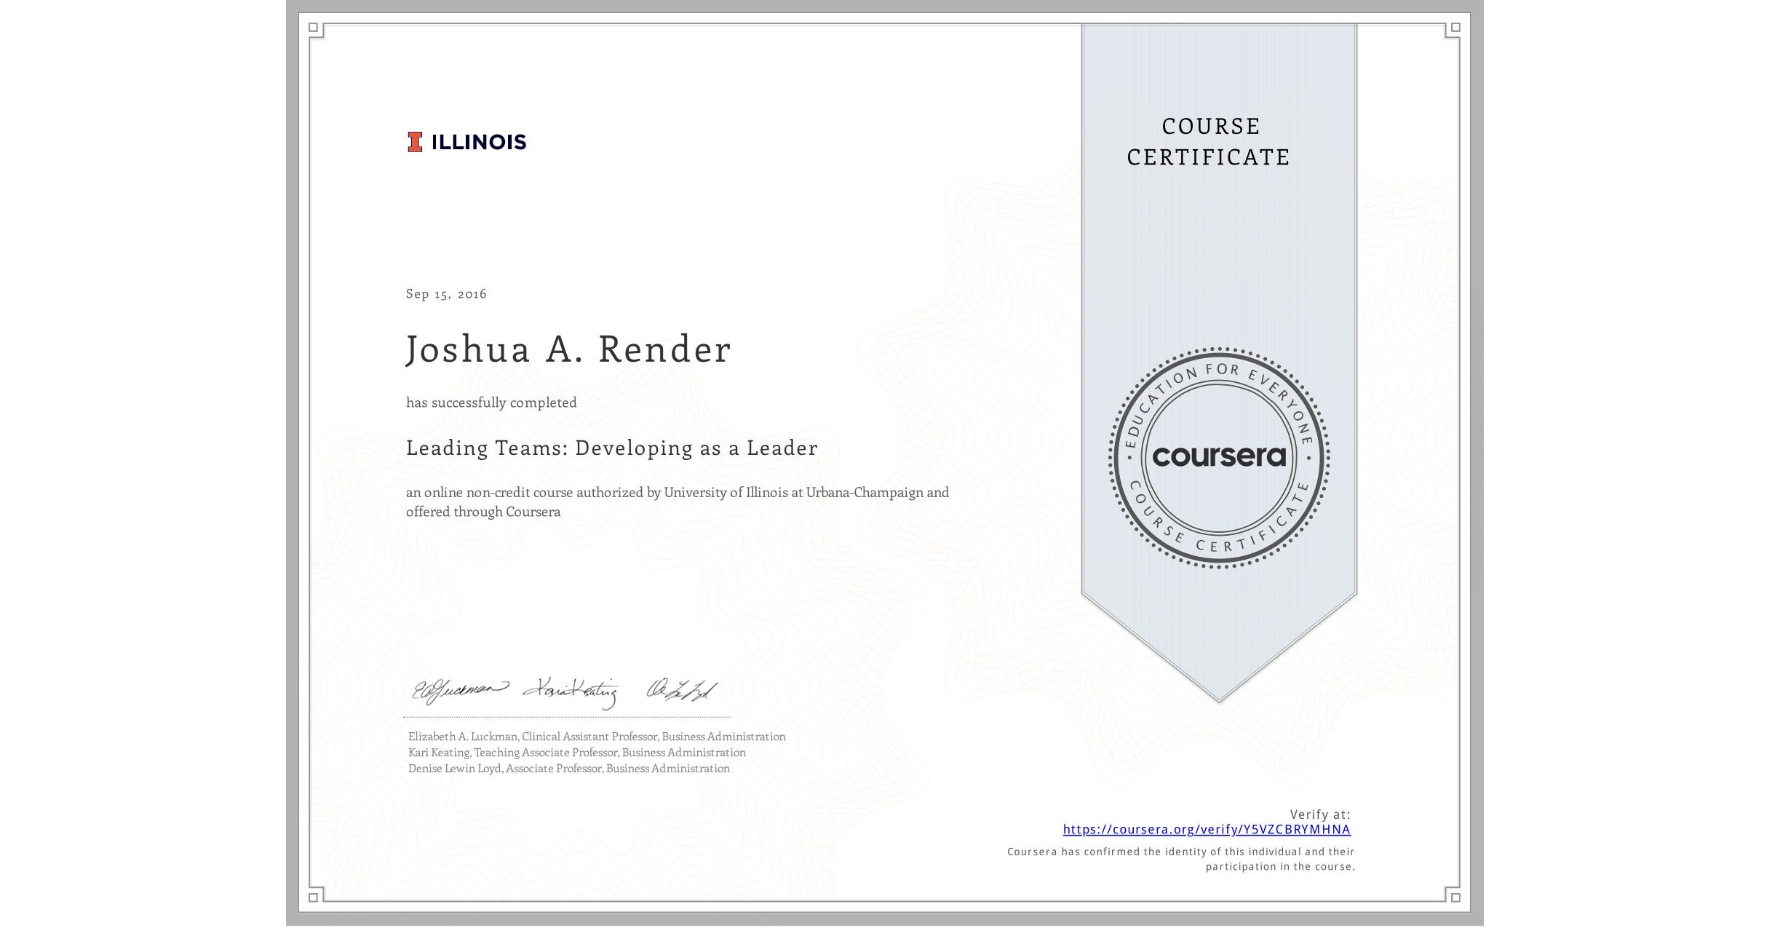 View certificate for Joshua A. Render, Foundations of Everyday Leadership, an online non-credit course authorized by University of Illinois at Urbana-Champaign and offered through Coursera